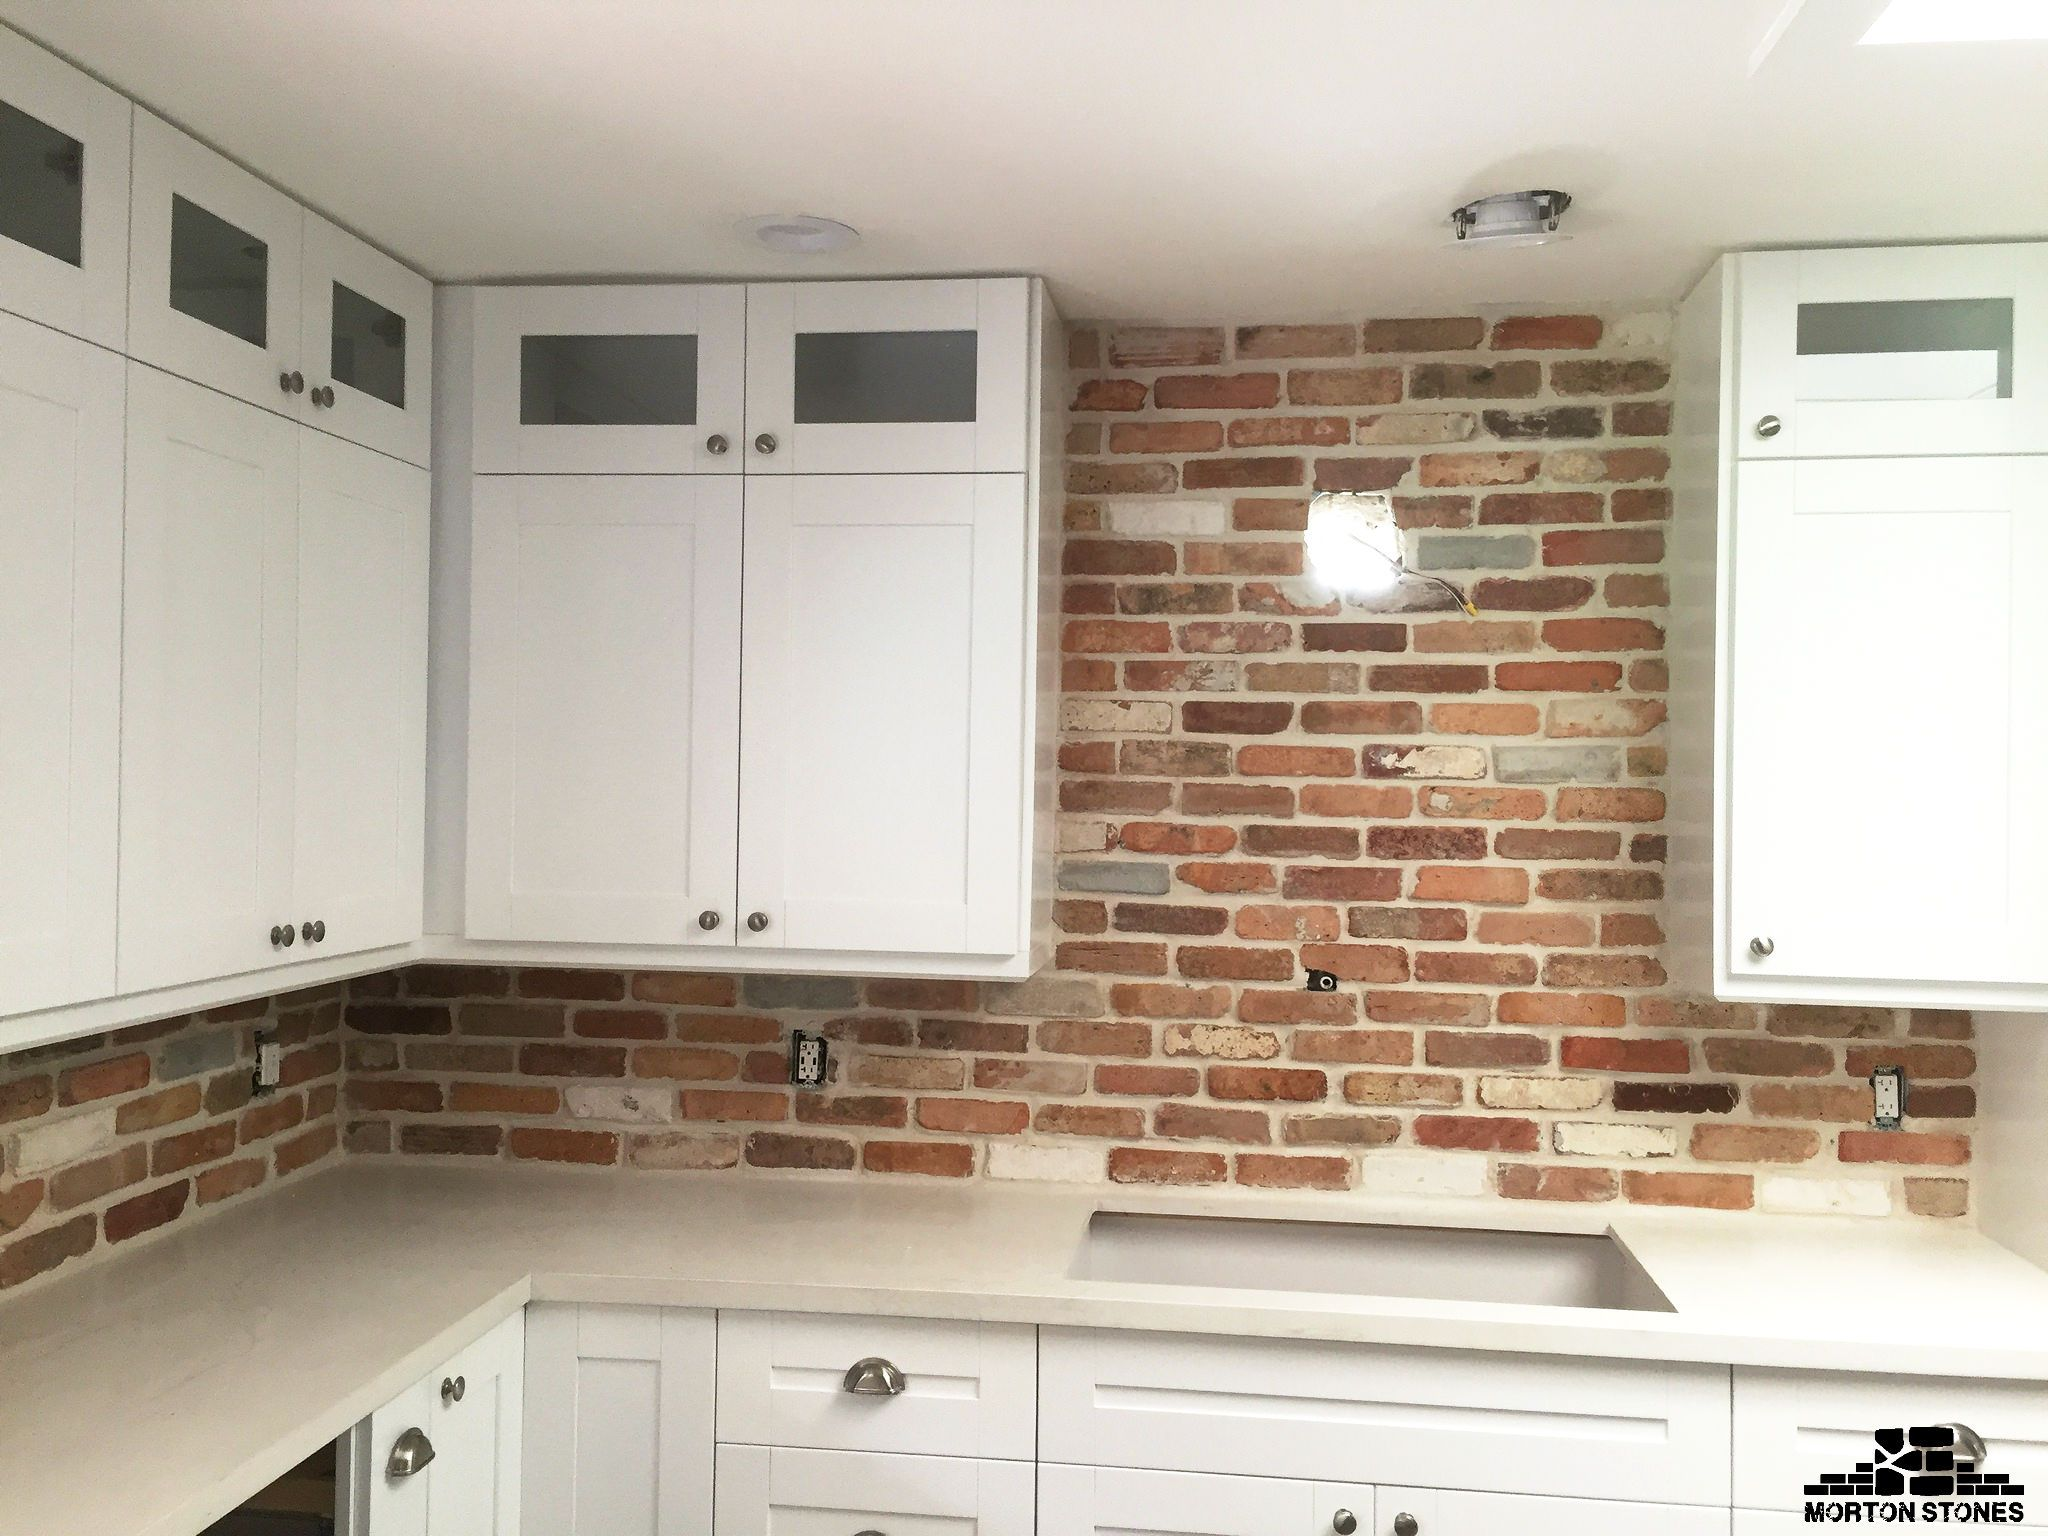 A Red Brick Veneer Backsplash Project Mortonstones Brick Tiles